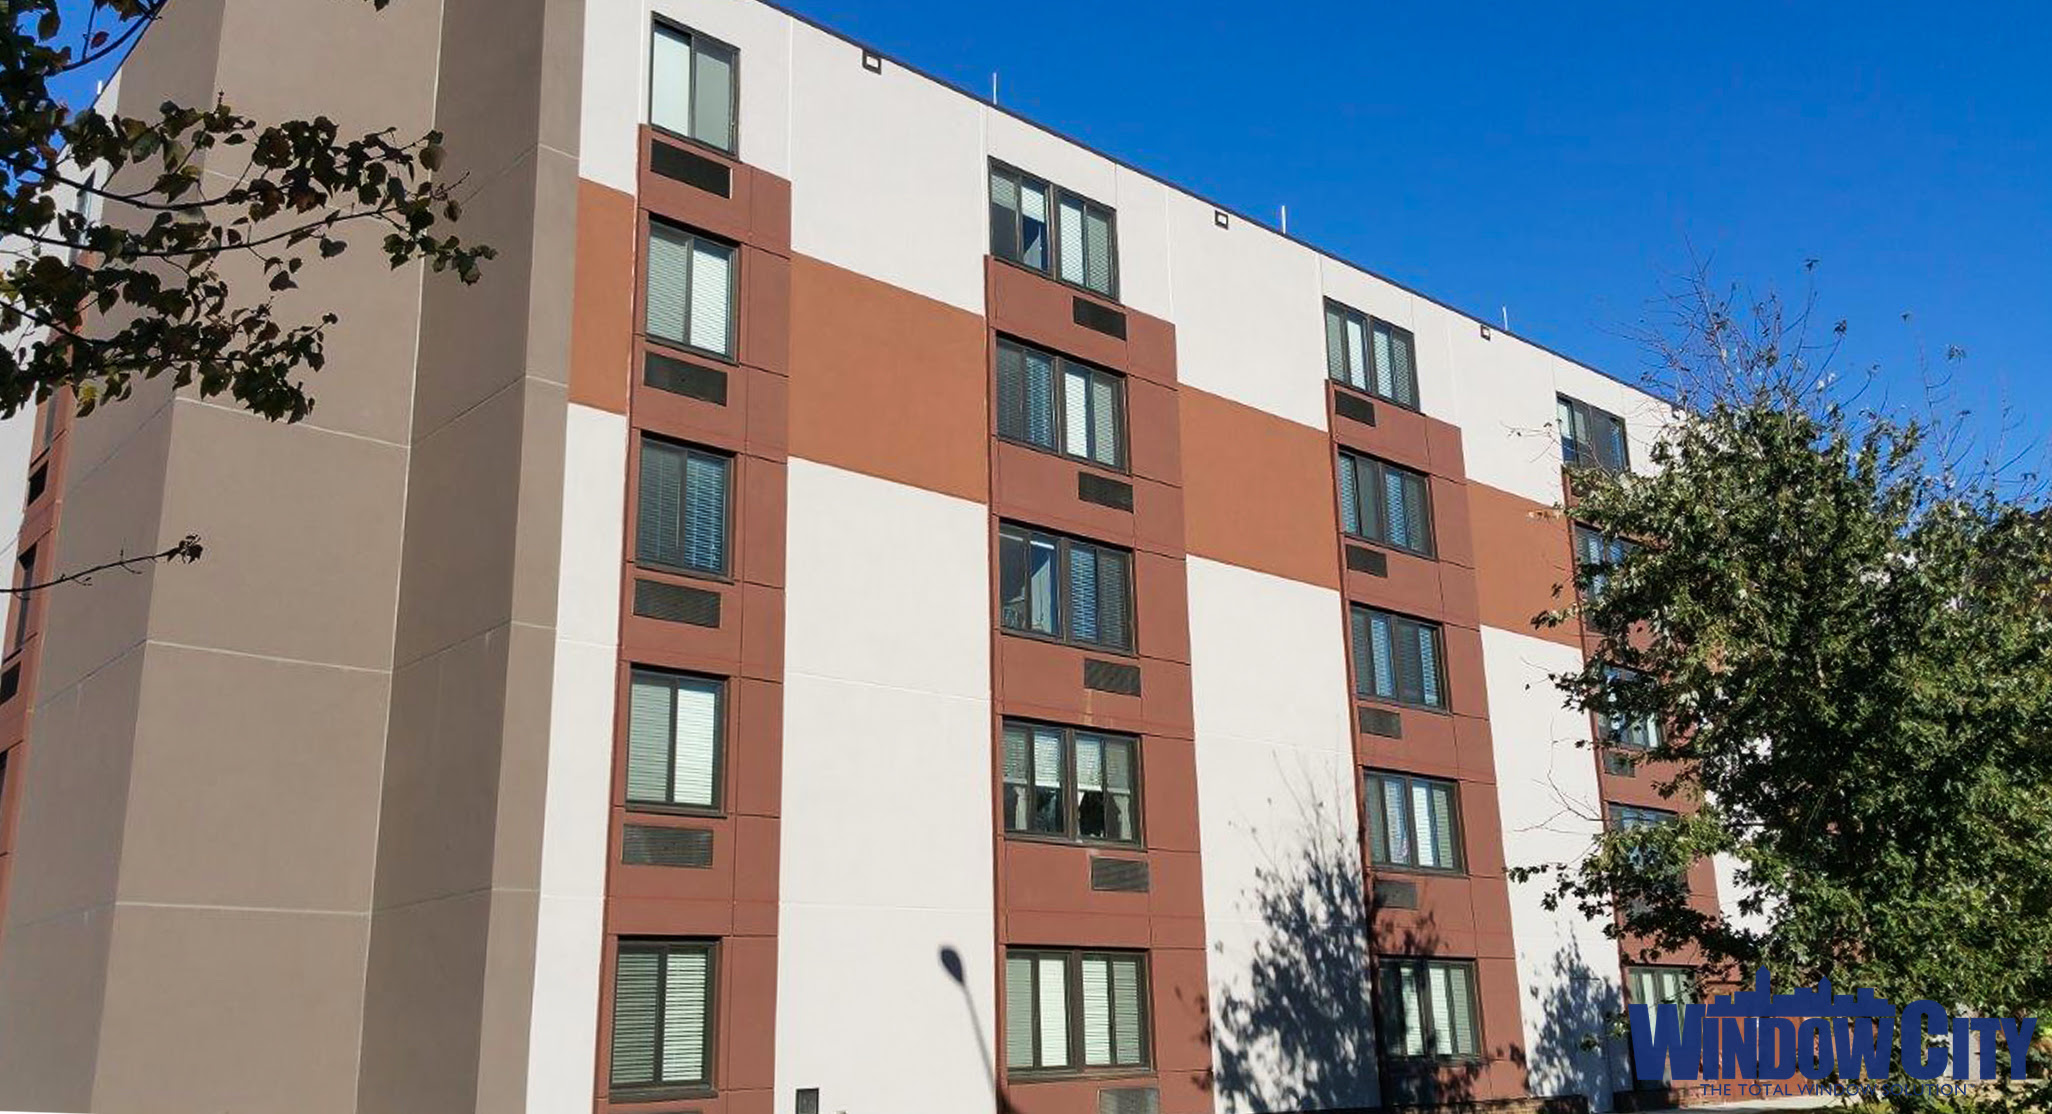 Apartments In Manchester Tn 37355 - alenaschaad